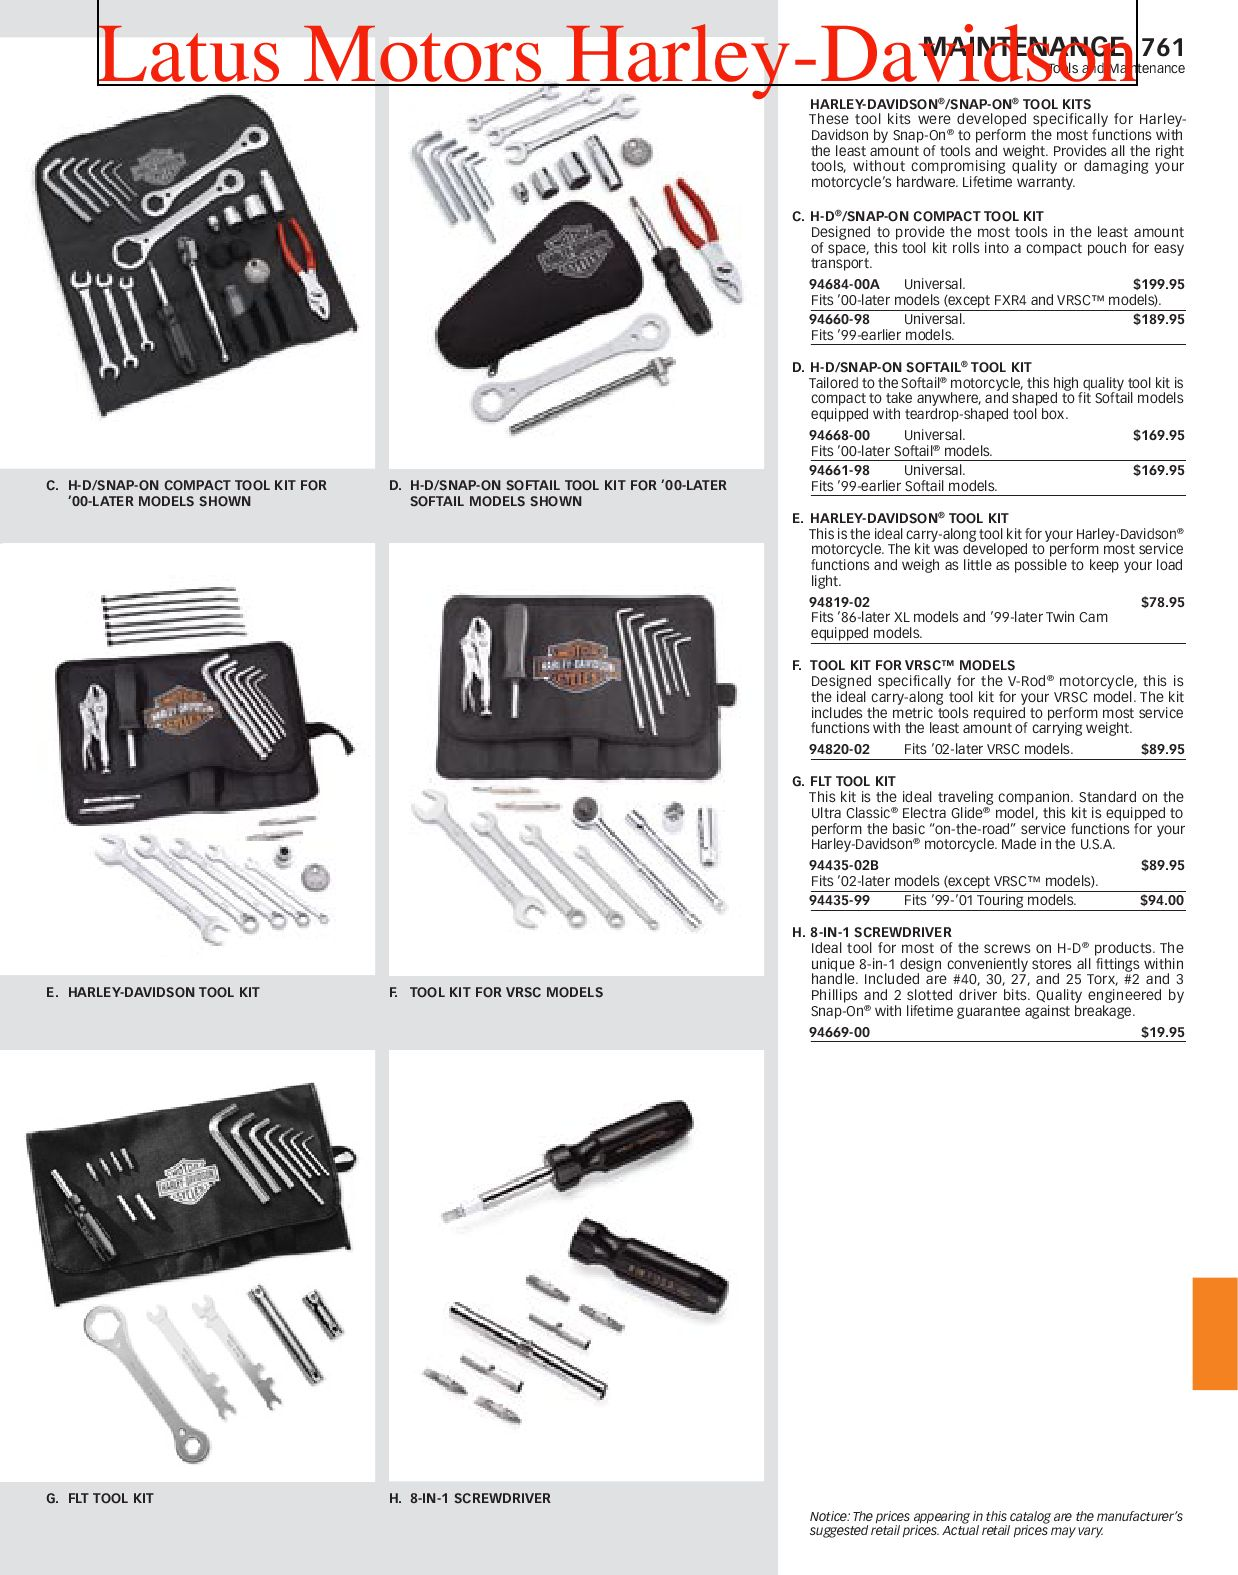 harley davidson accessories catalog 2011 part 2 harley davidson parts and accessories catalog by 12168